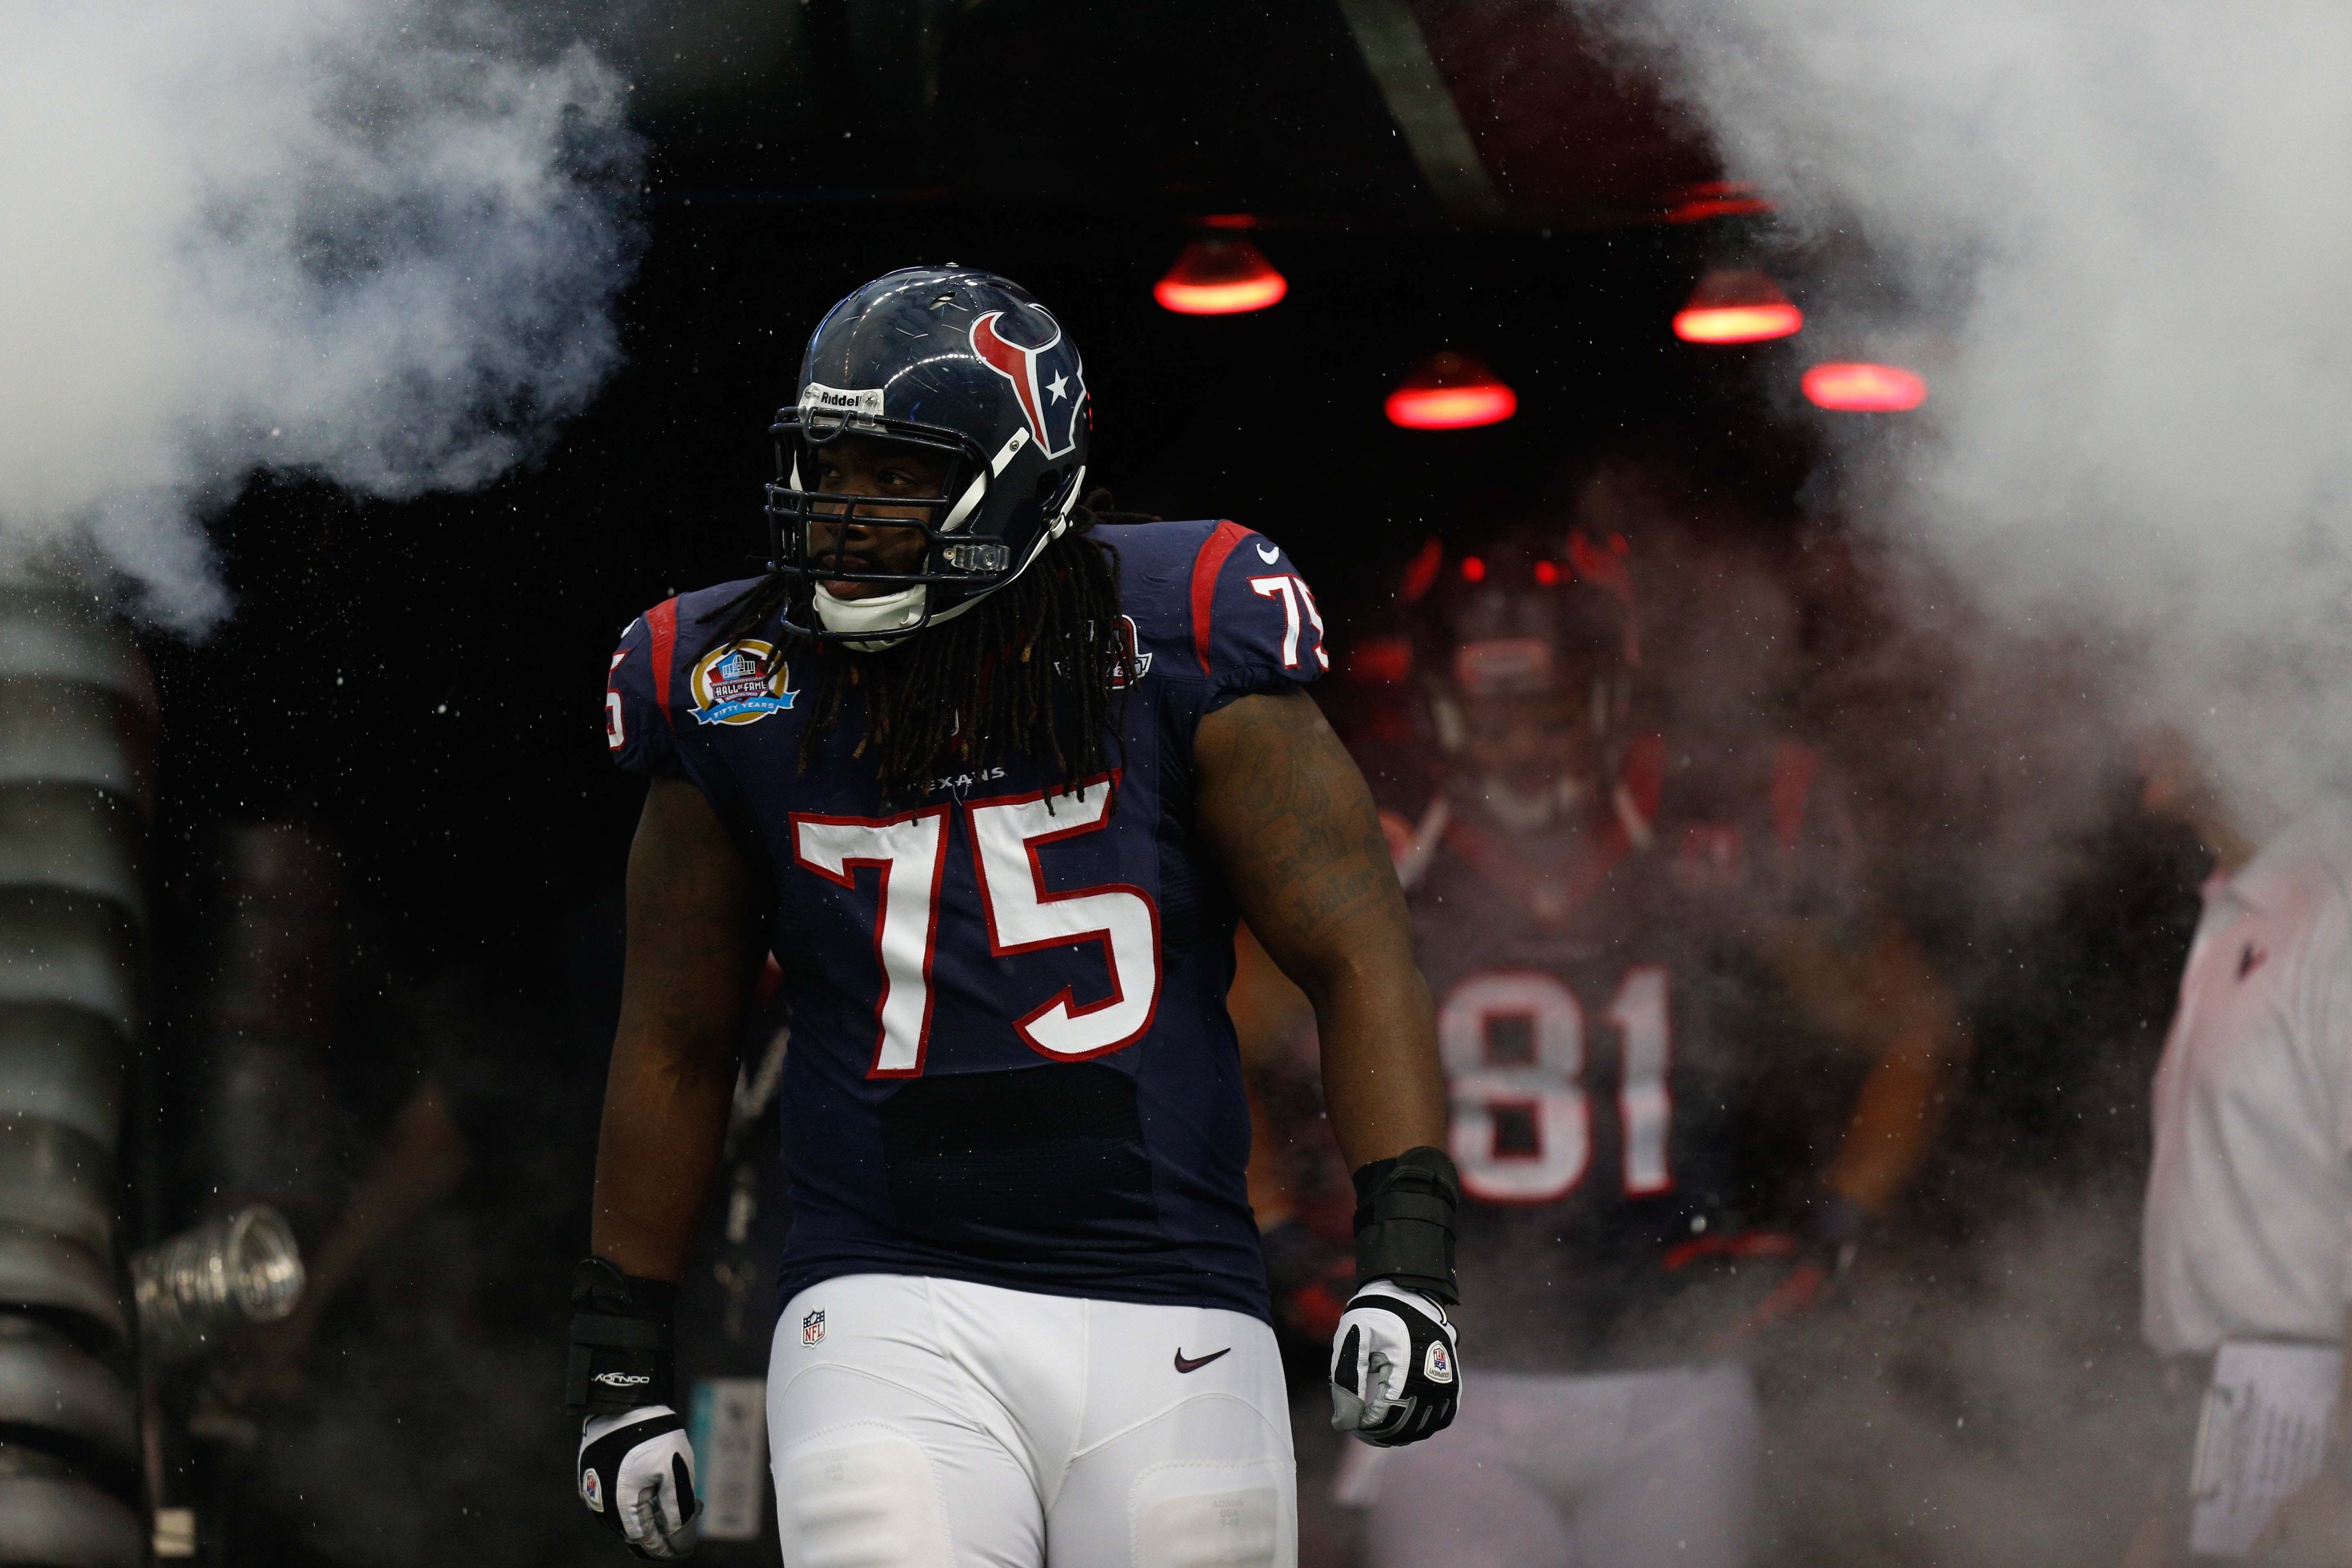 Derek Newton coming out of the tunnel